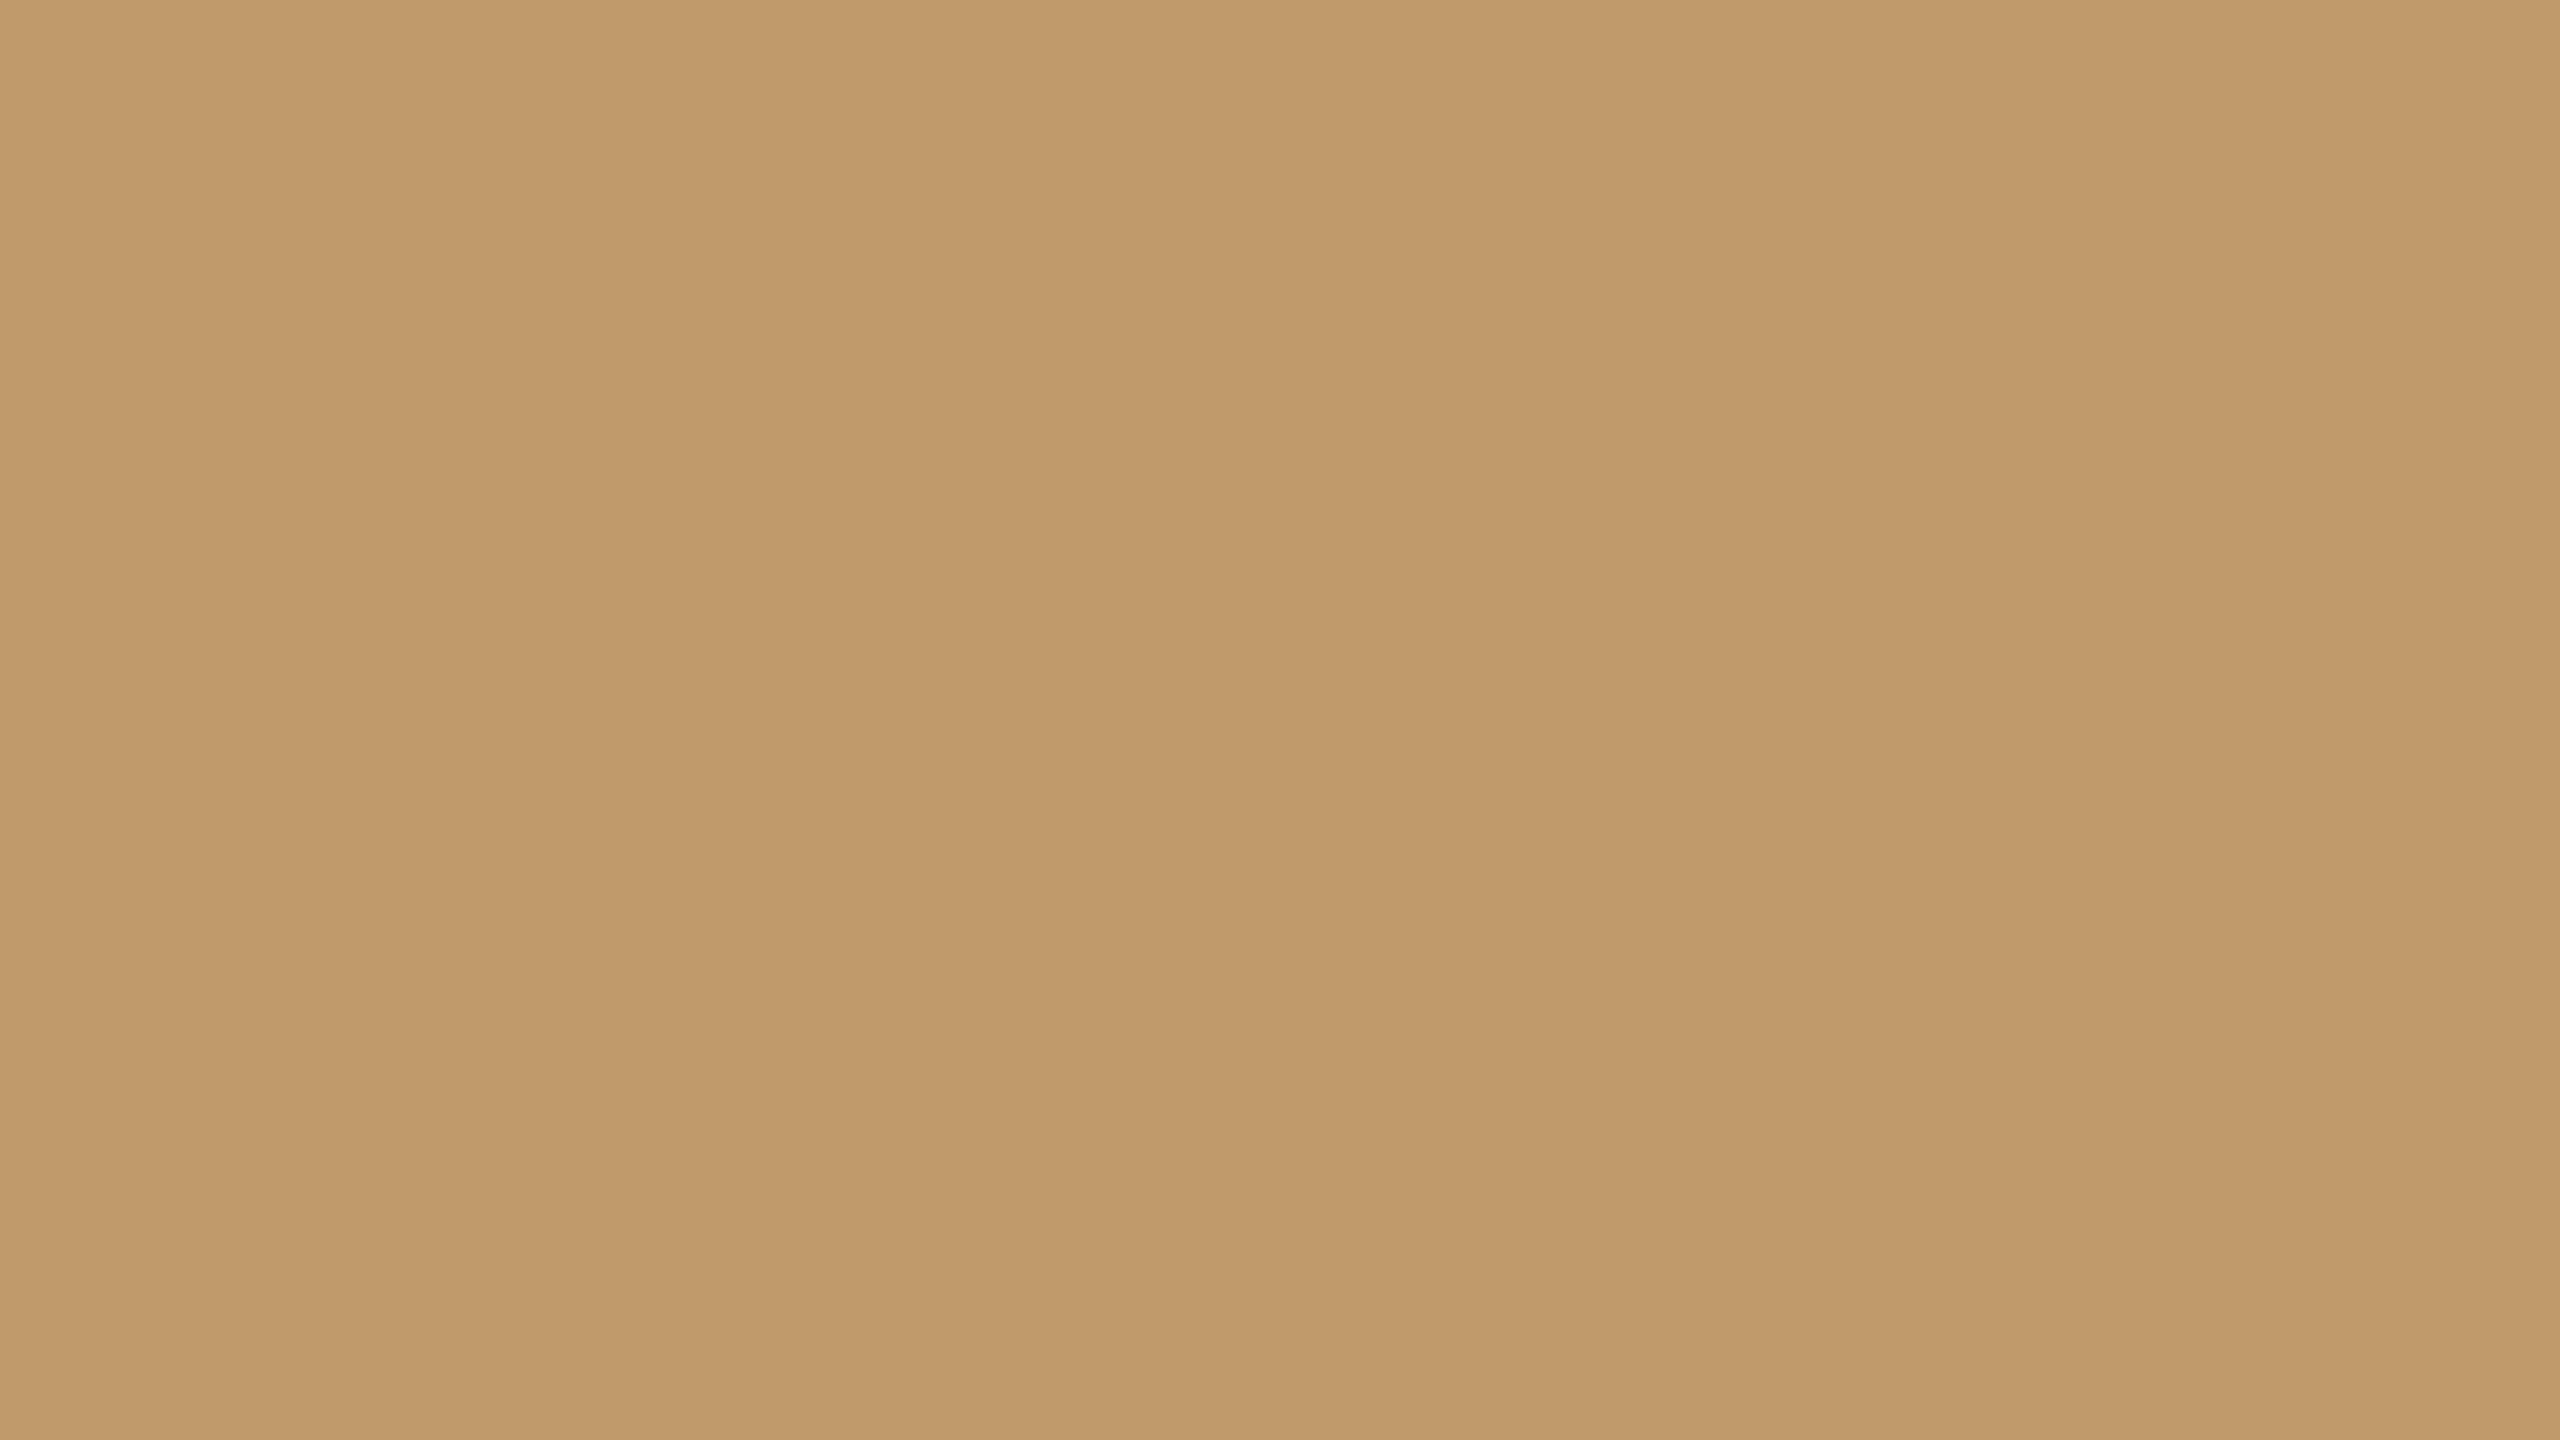 2560x1440 Wood Brown Solid Color Background 2560x1440